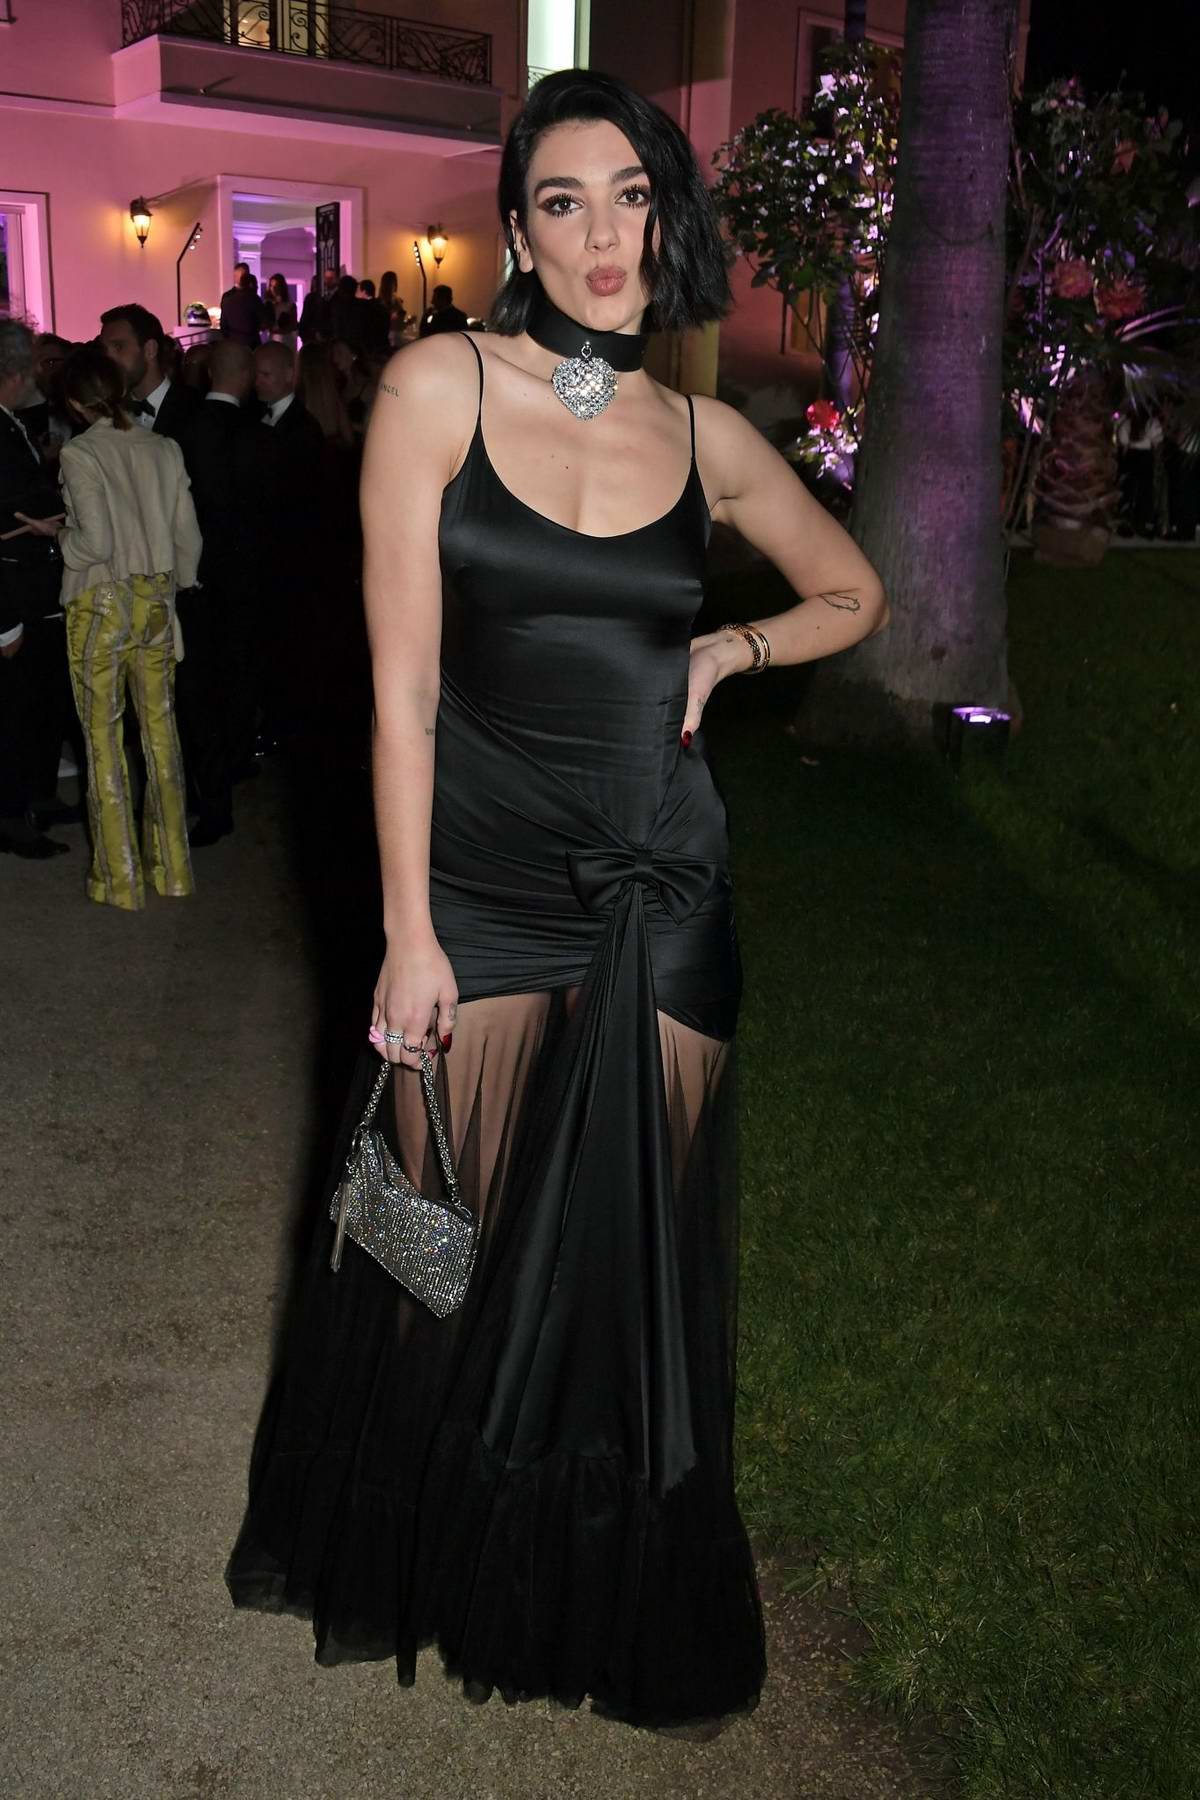 Dua Lipa attends the Formula E Dinner Celebrating world premiere of 'And We Go Green' during the 72nd Cannes Film Festival in Cannes, France